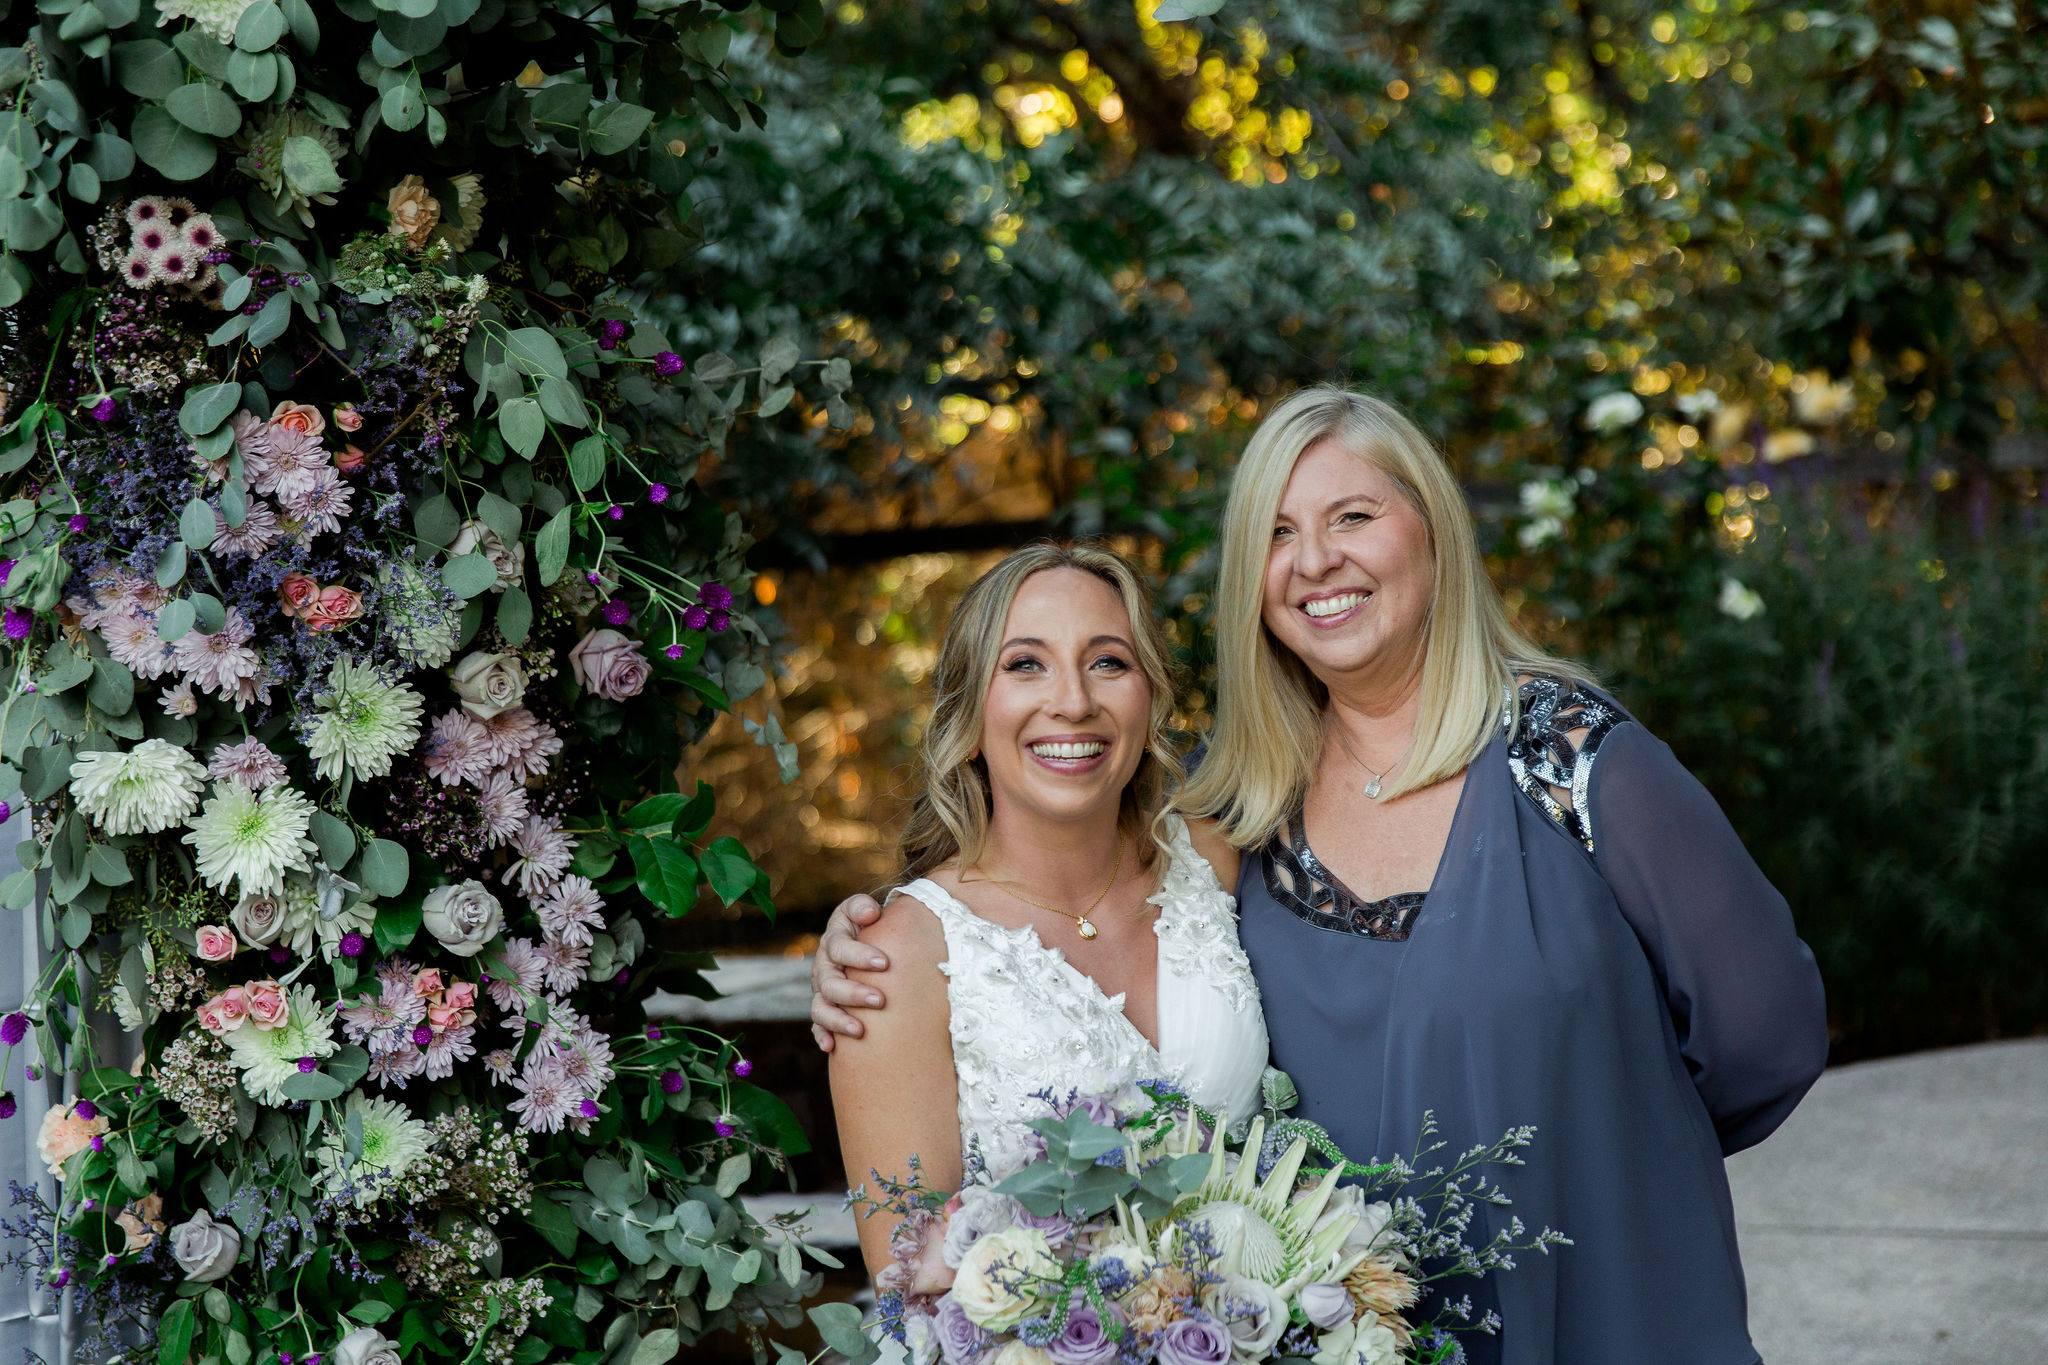 bride and her mom surrounded by florals at the wedding venue